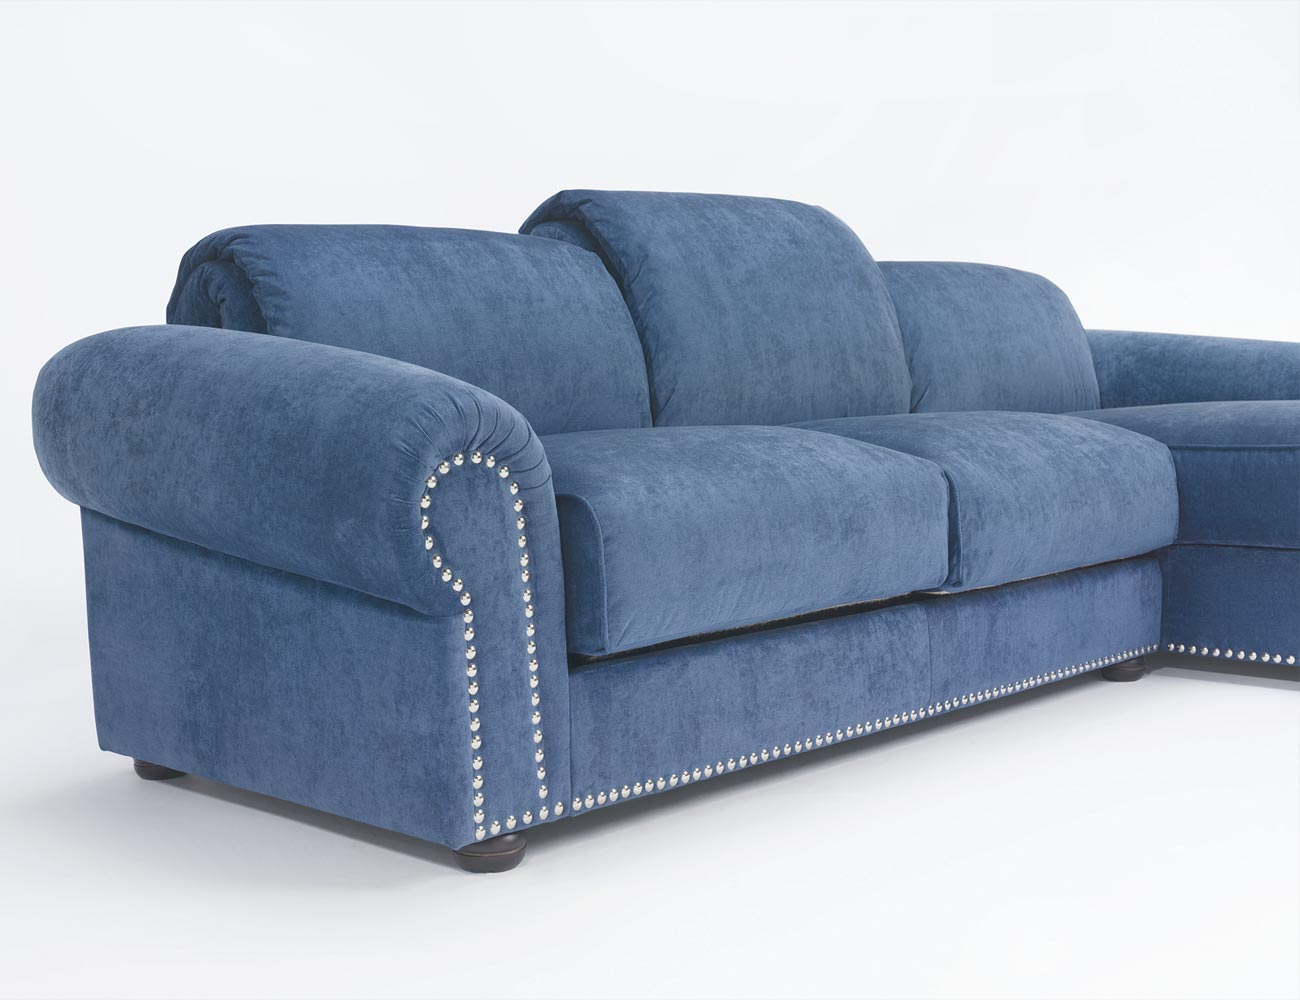 Sofa chaiselongue gran lujo decorativo azul 14